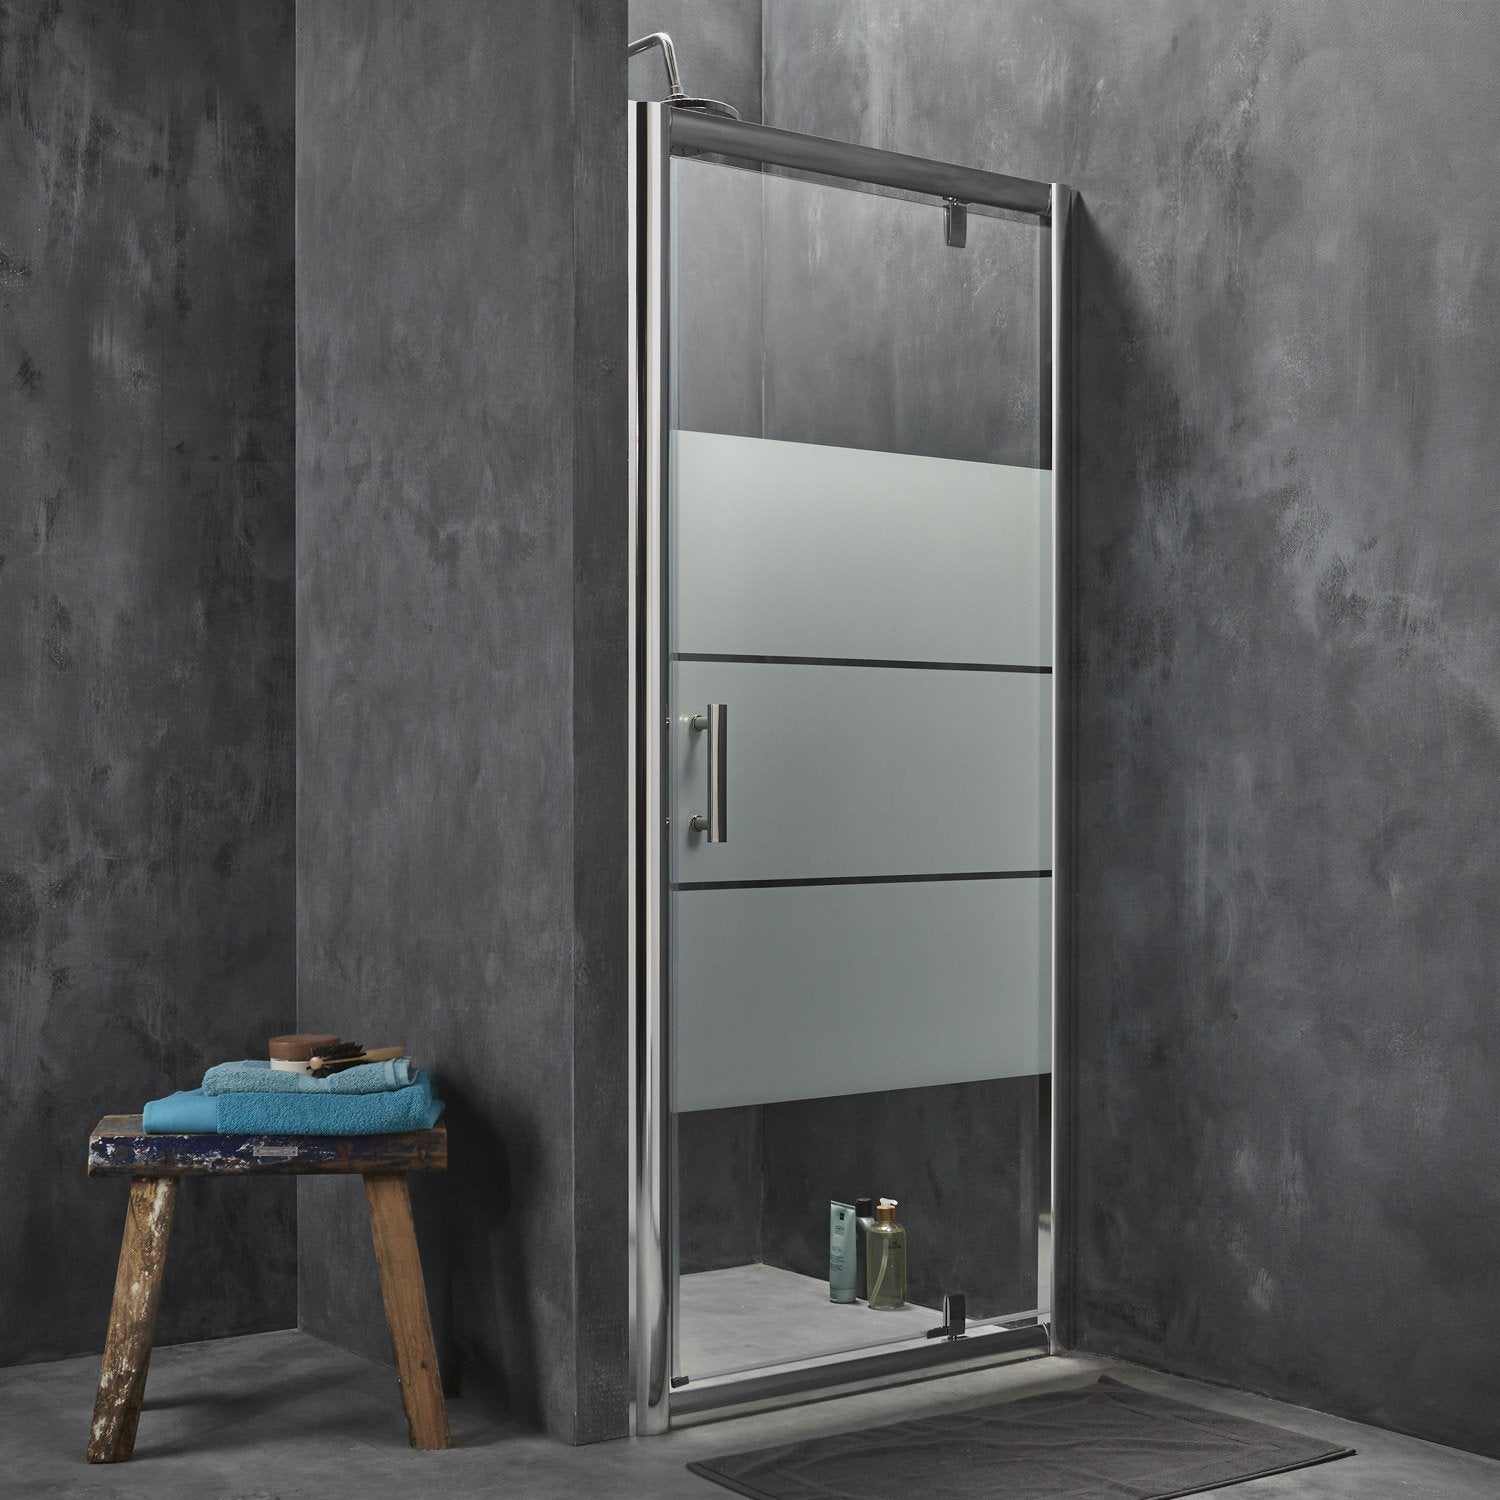 porte de douche pivotante 86 5 90 cm profil chrom optima2 leroy merlin. Black Bedroom Furniture Sets. Home Design Ideas